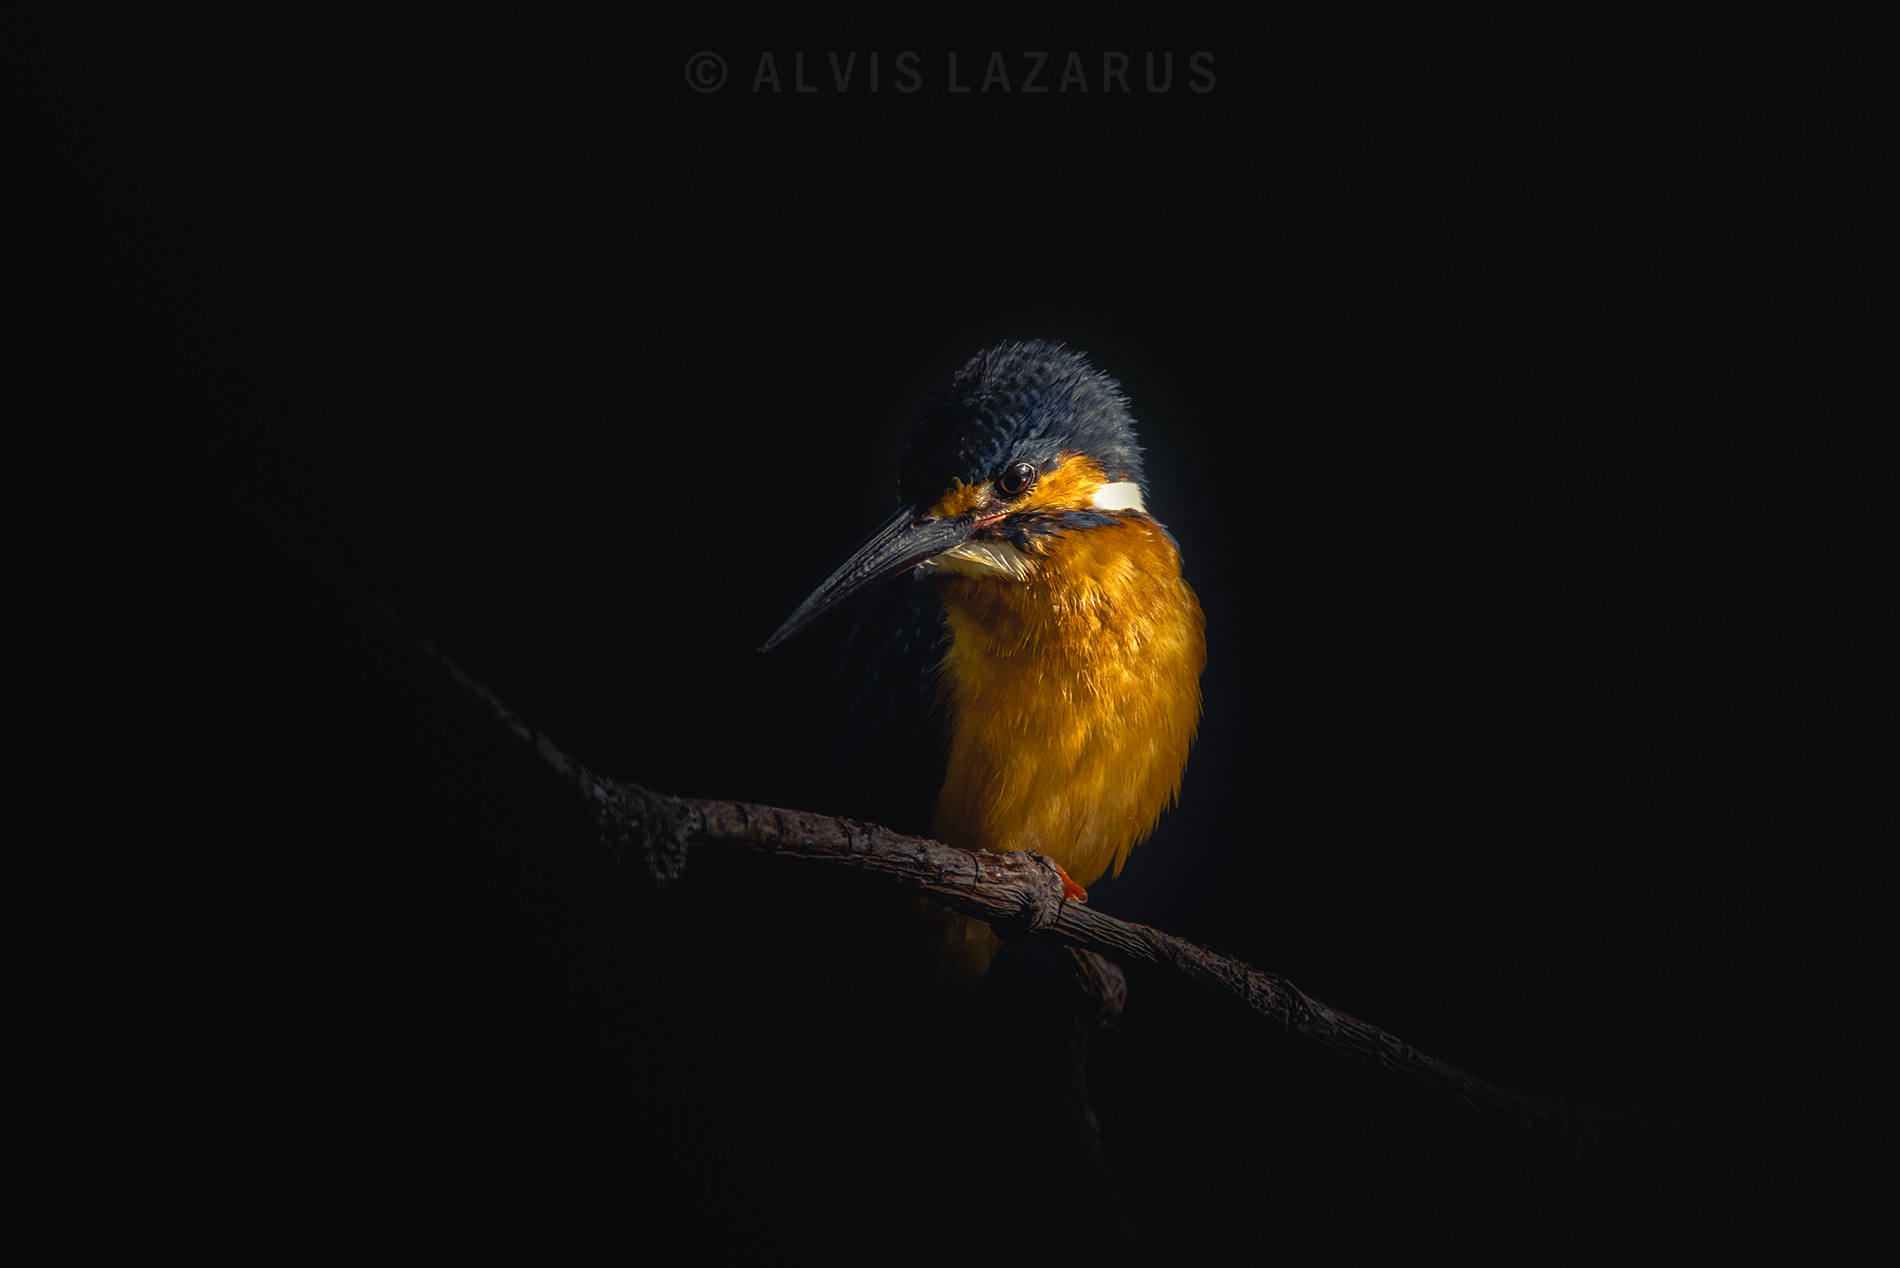 kingfisher portrait perch wildlife-photography exposure-compensation